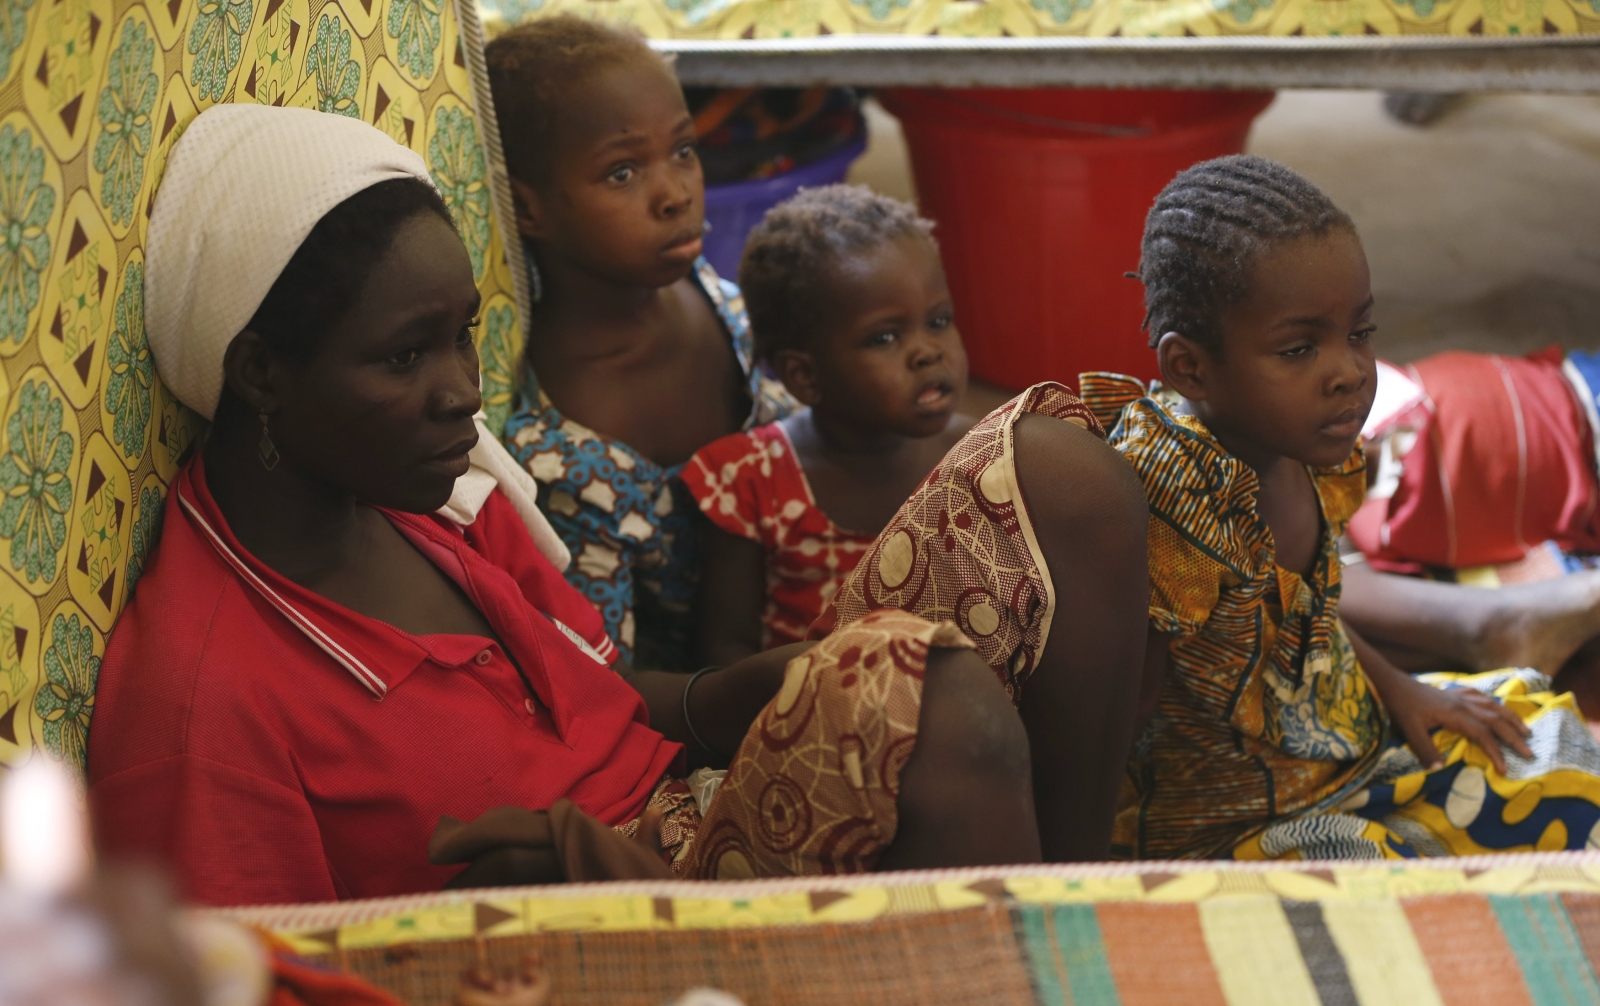 Boko Haram freed